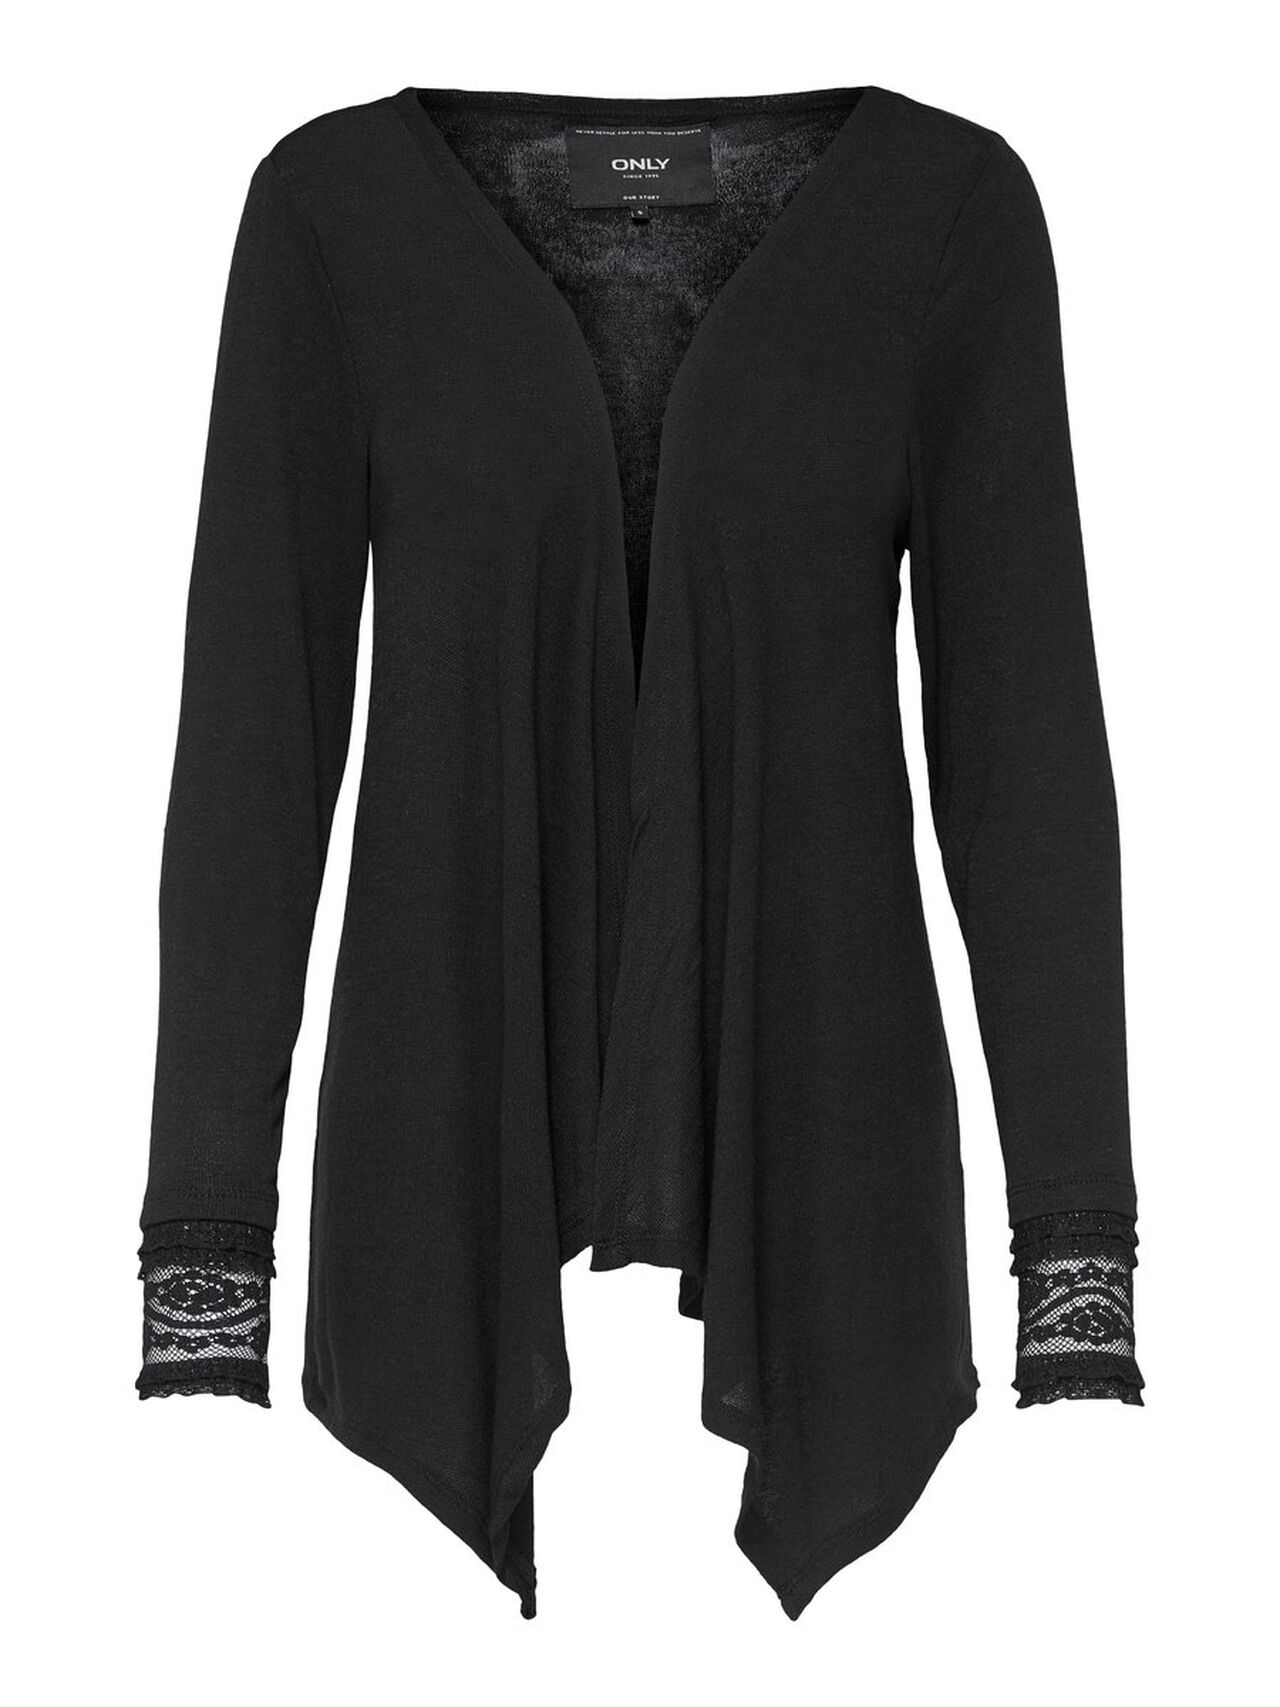 ONLY Long Sleeved Cardigan Women Black